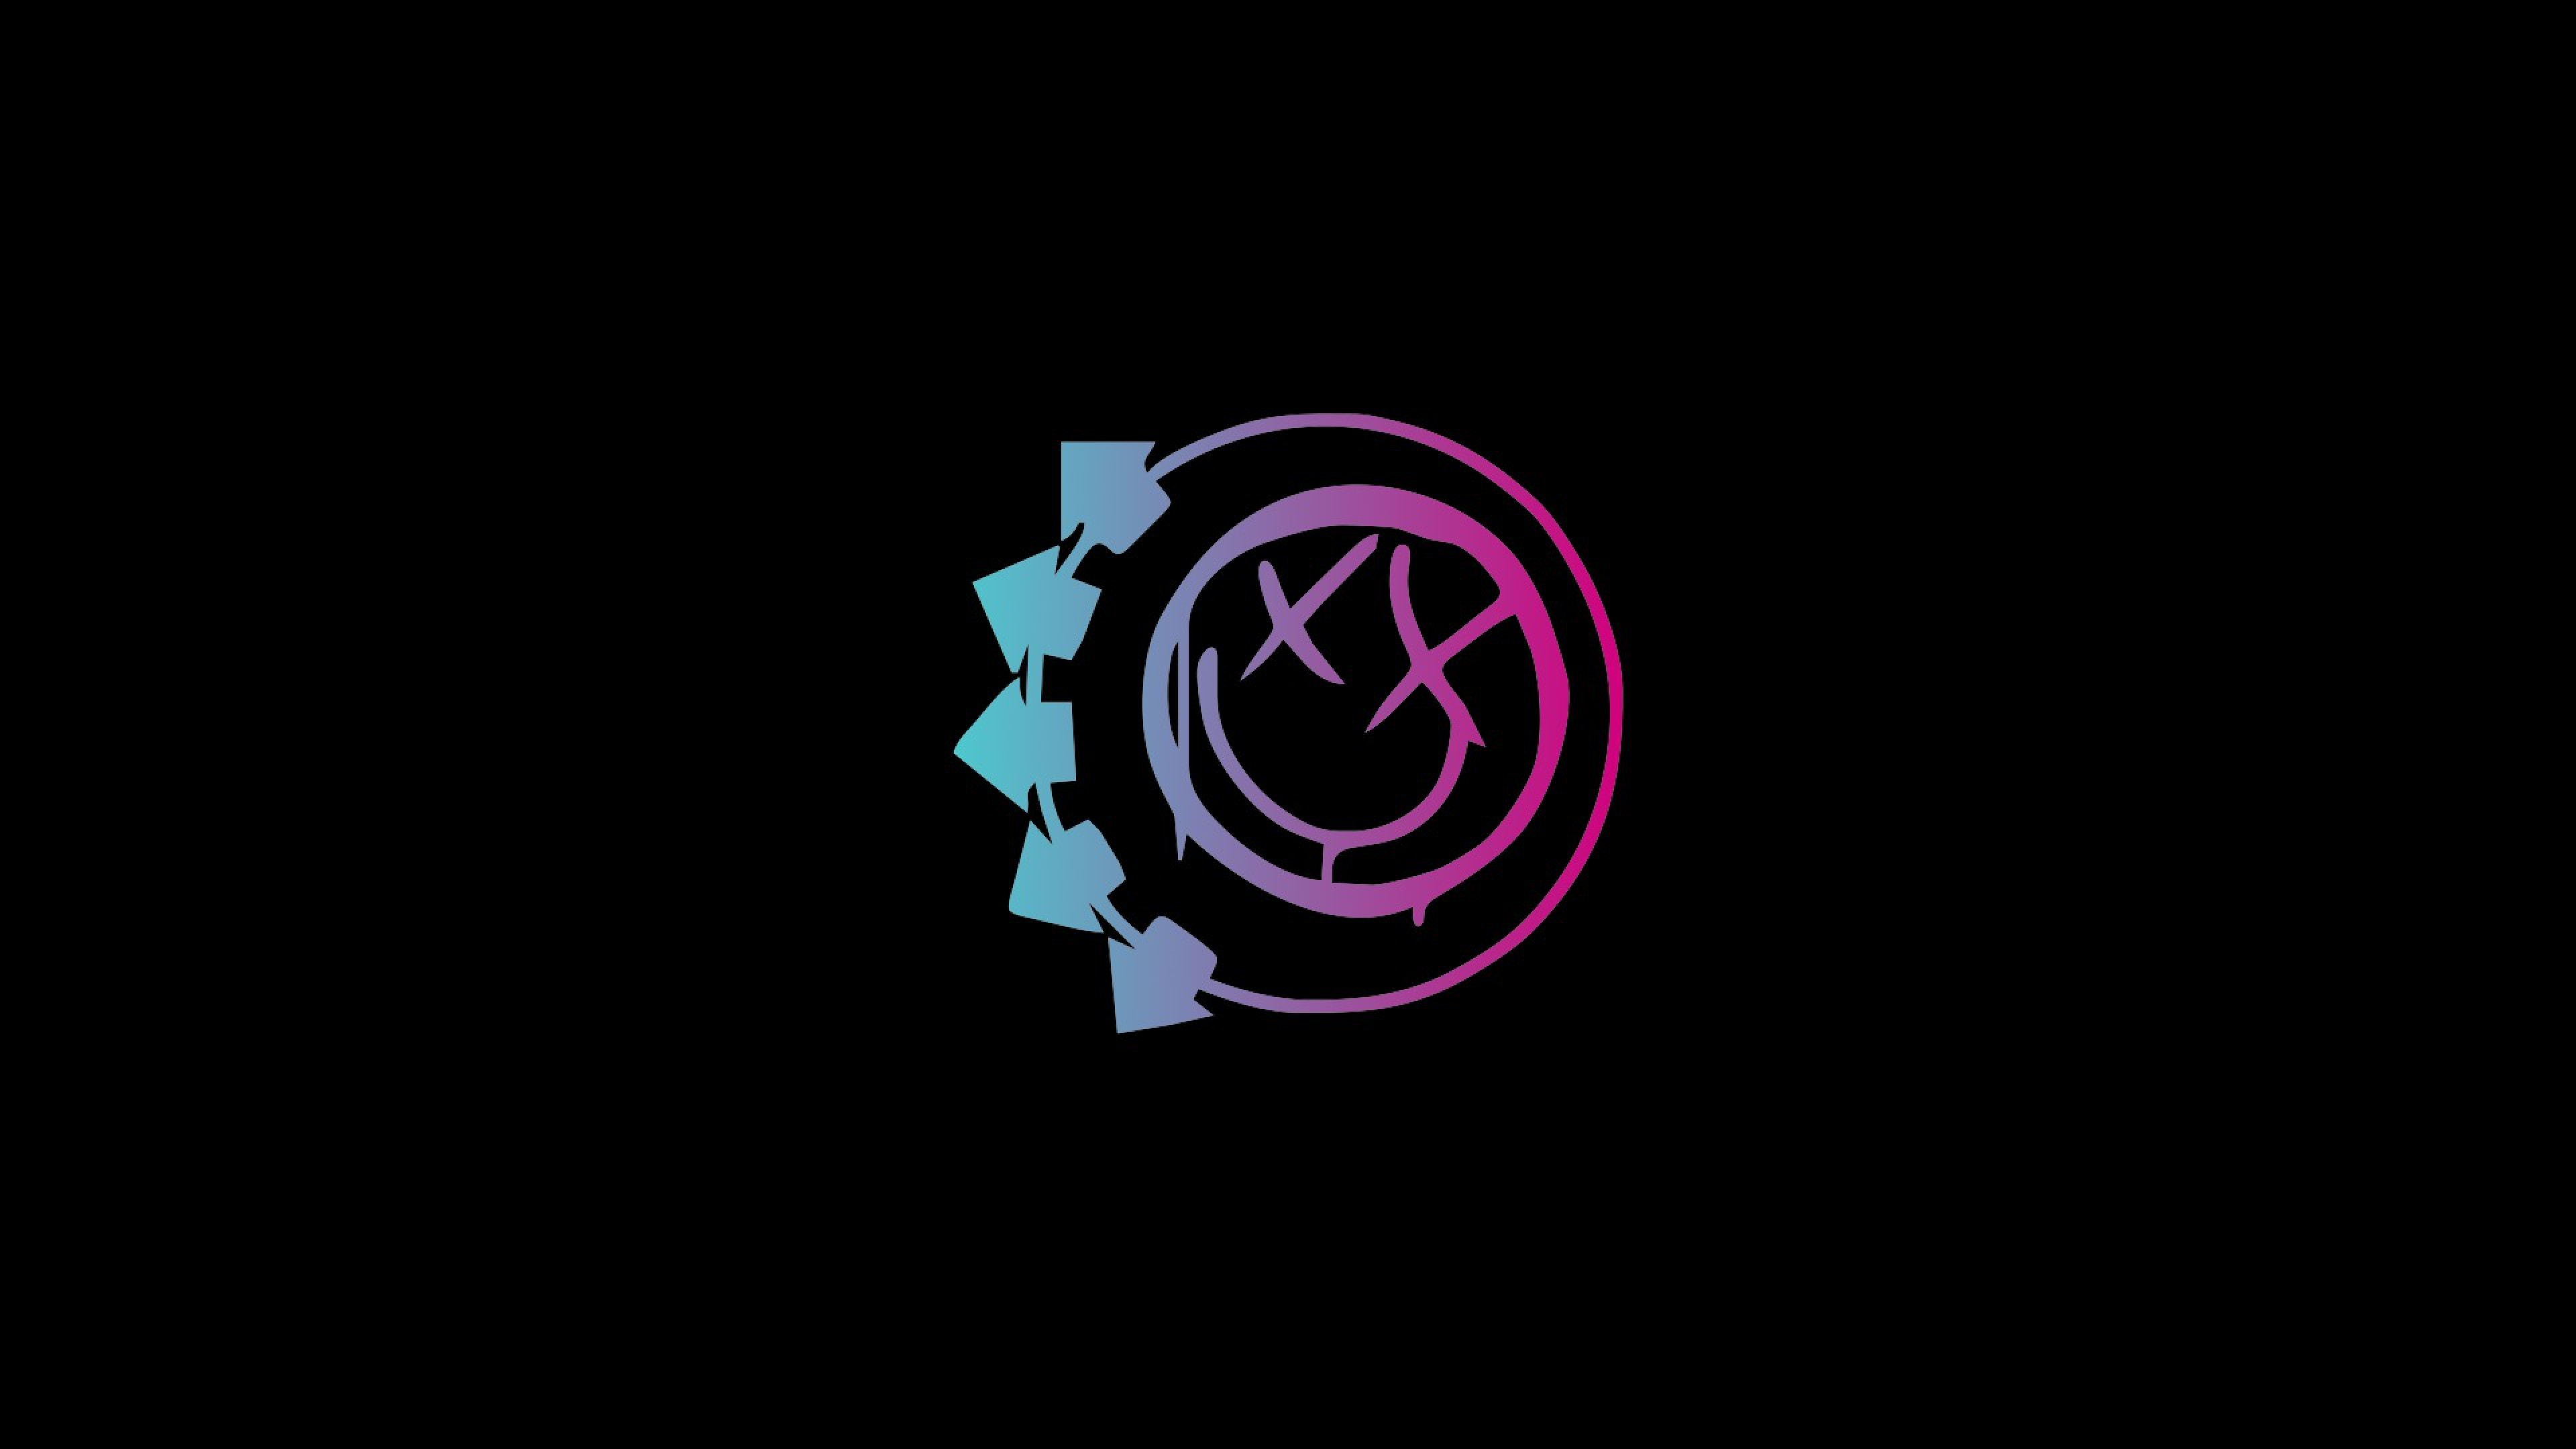 blink 182 widescreen wallpaper 70915